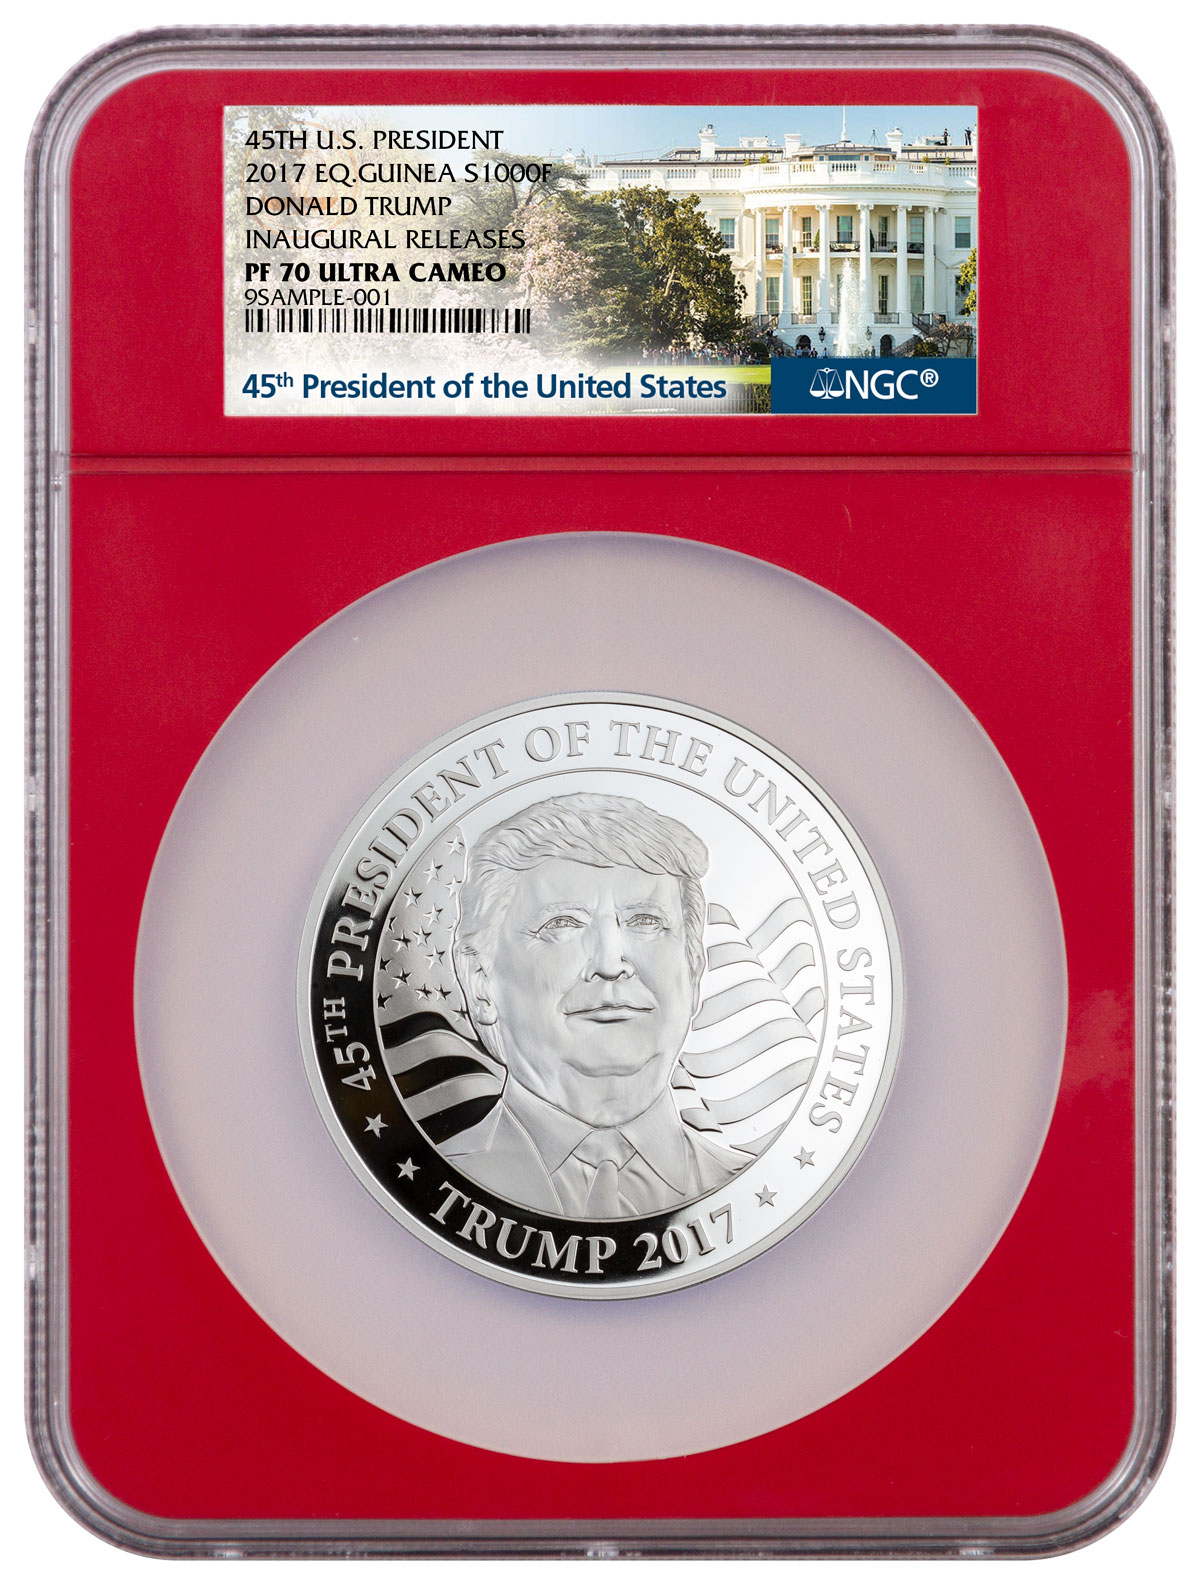 2017 Equatorial Guinea Donald Trump 1 oz Silver Proof Coin Inaugural Releases NGC PF70 UC (Red Core Holder Exclusive White House Label)